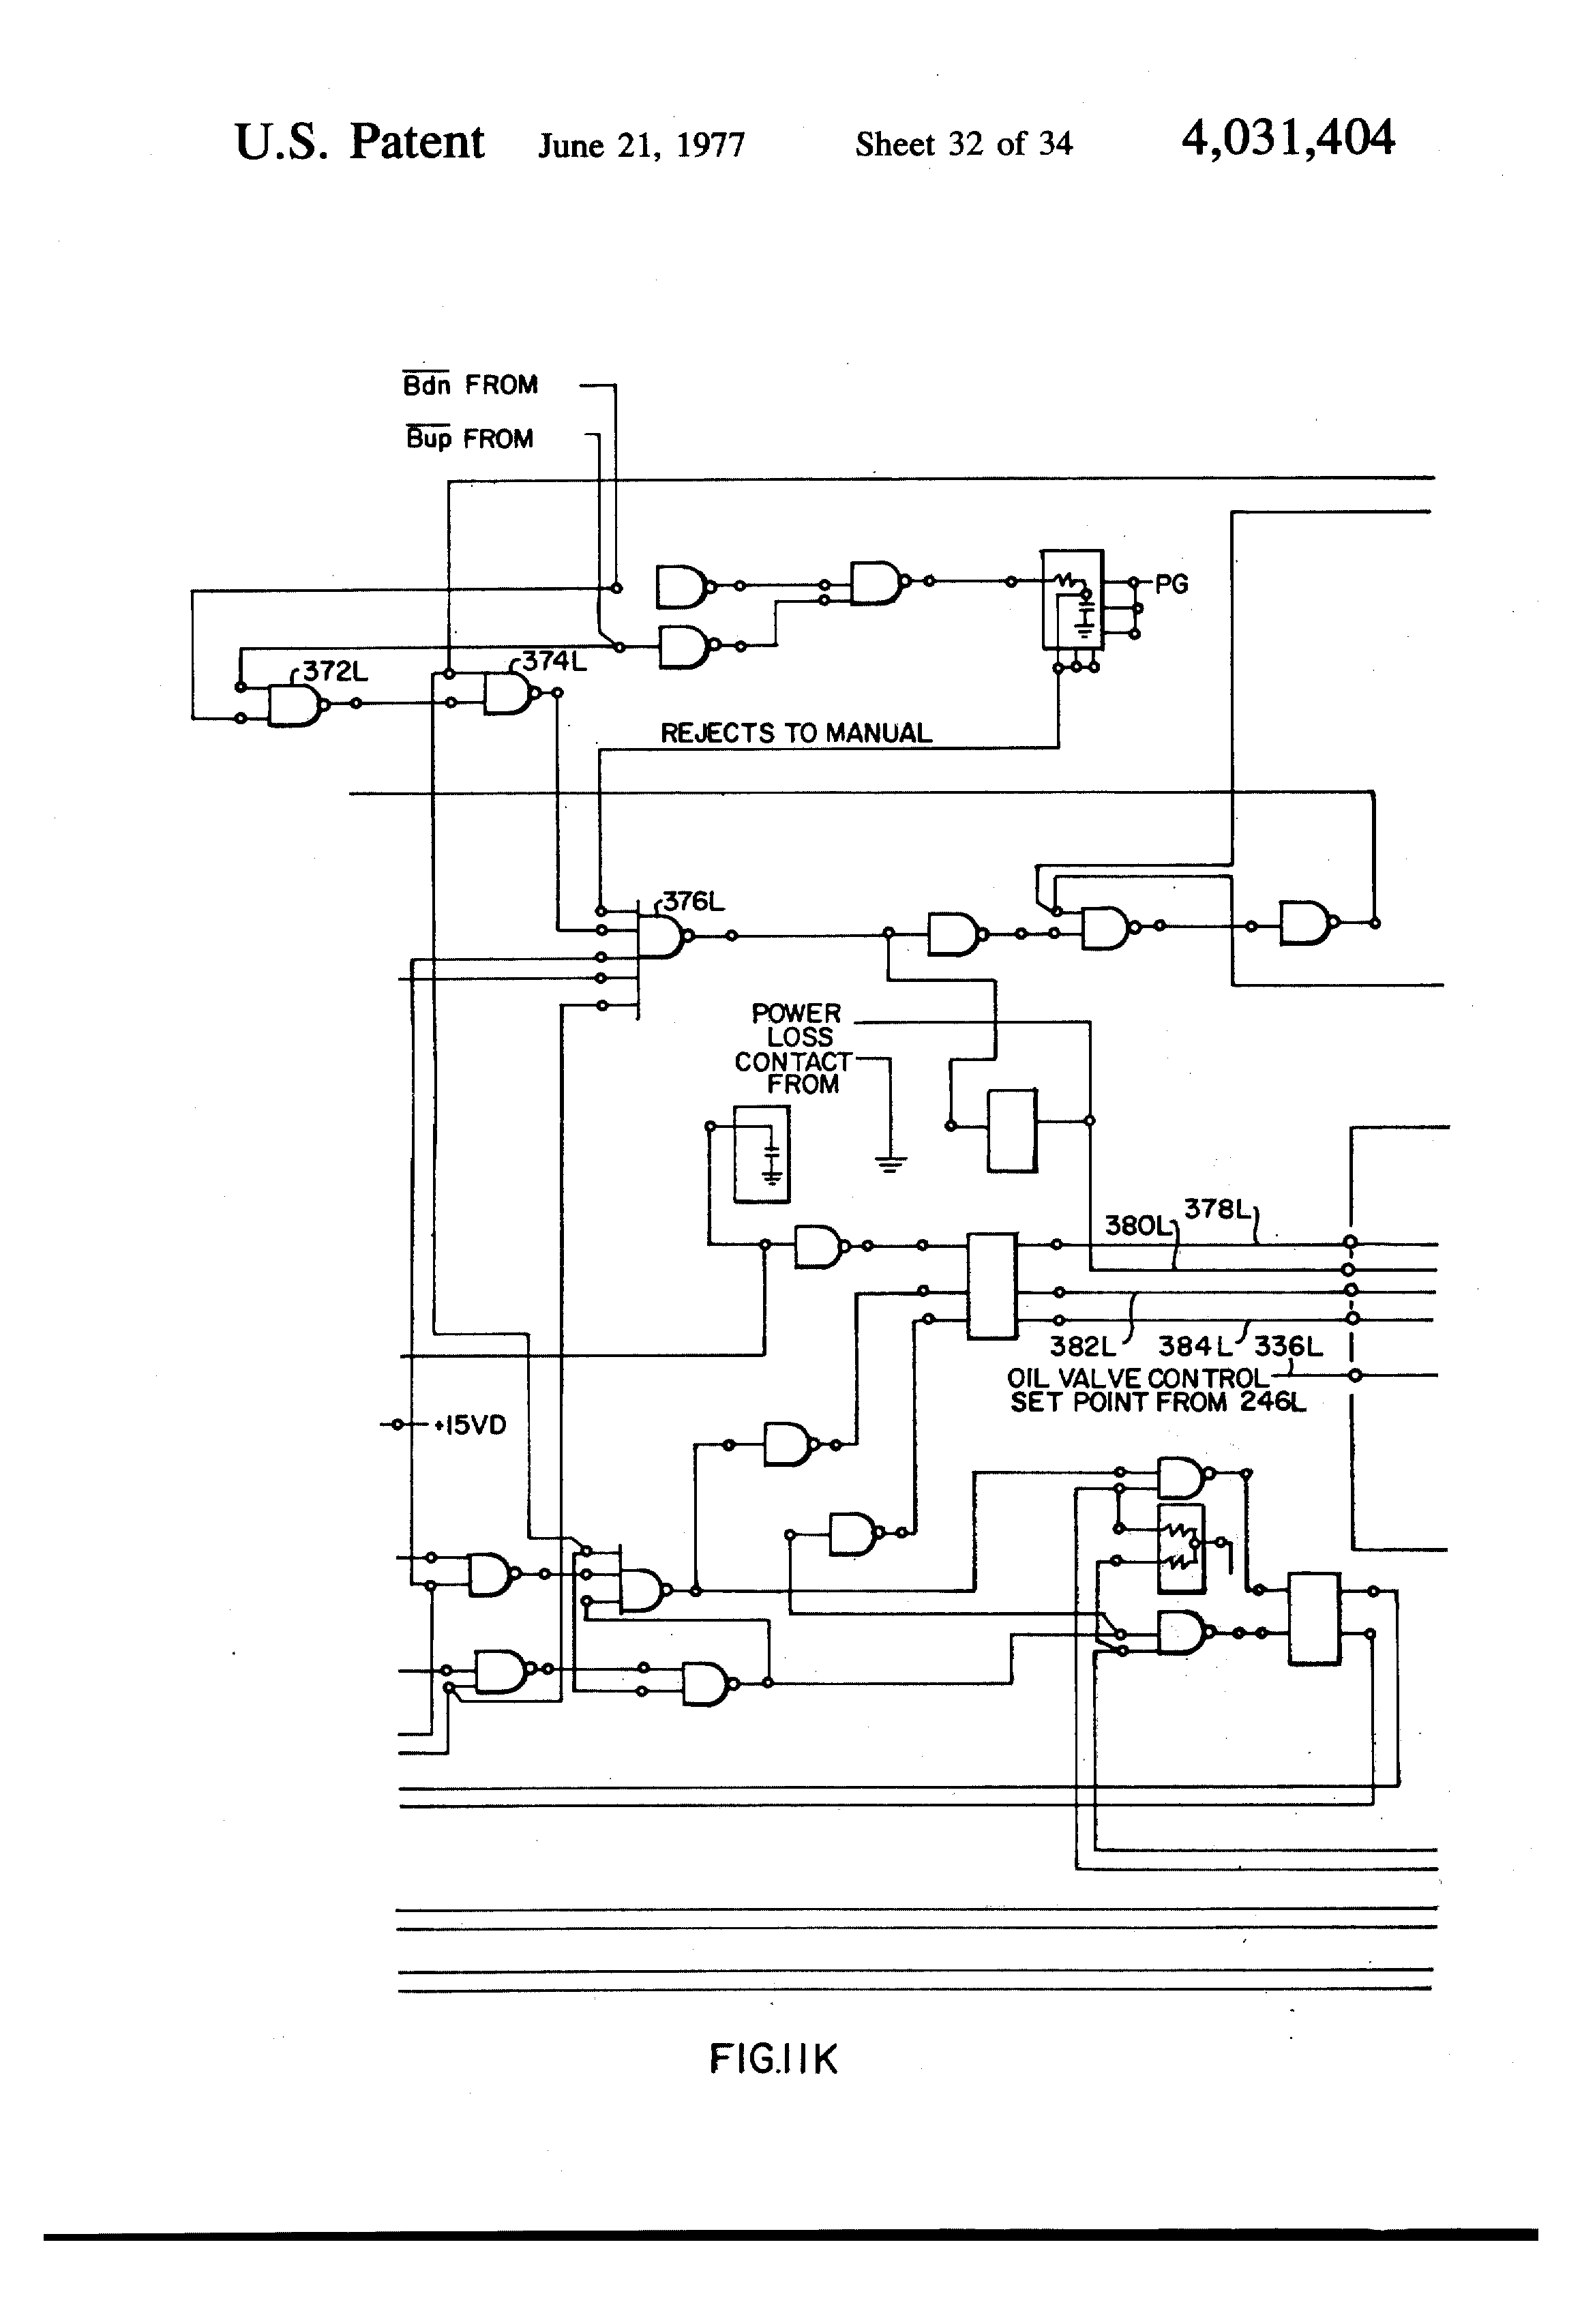 Patent US bined cycle electric power plant and a heat